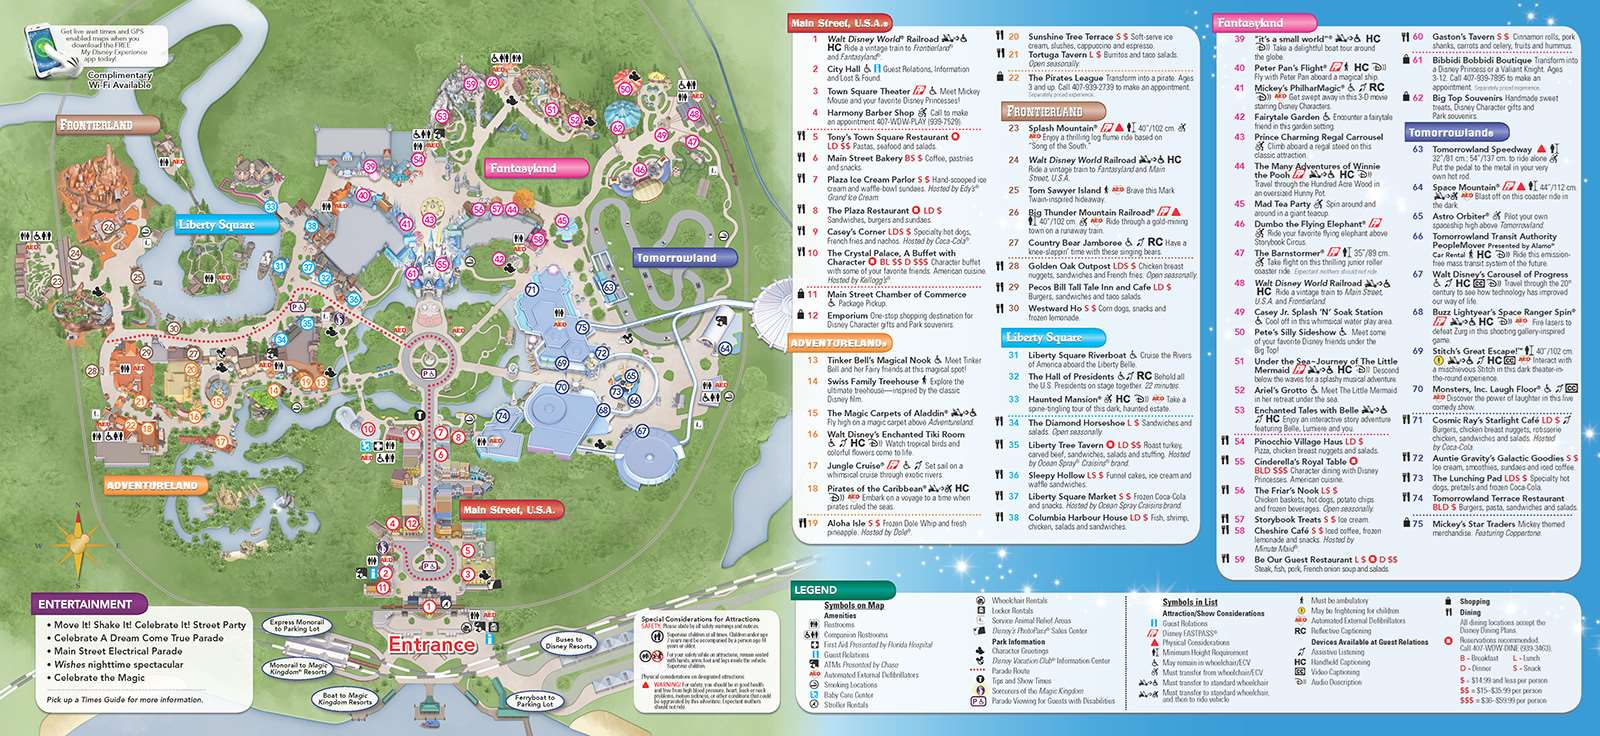 New 2013 Park Maps and Times Guides 2 of 20